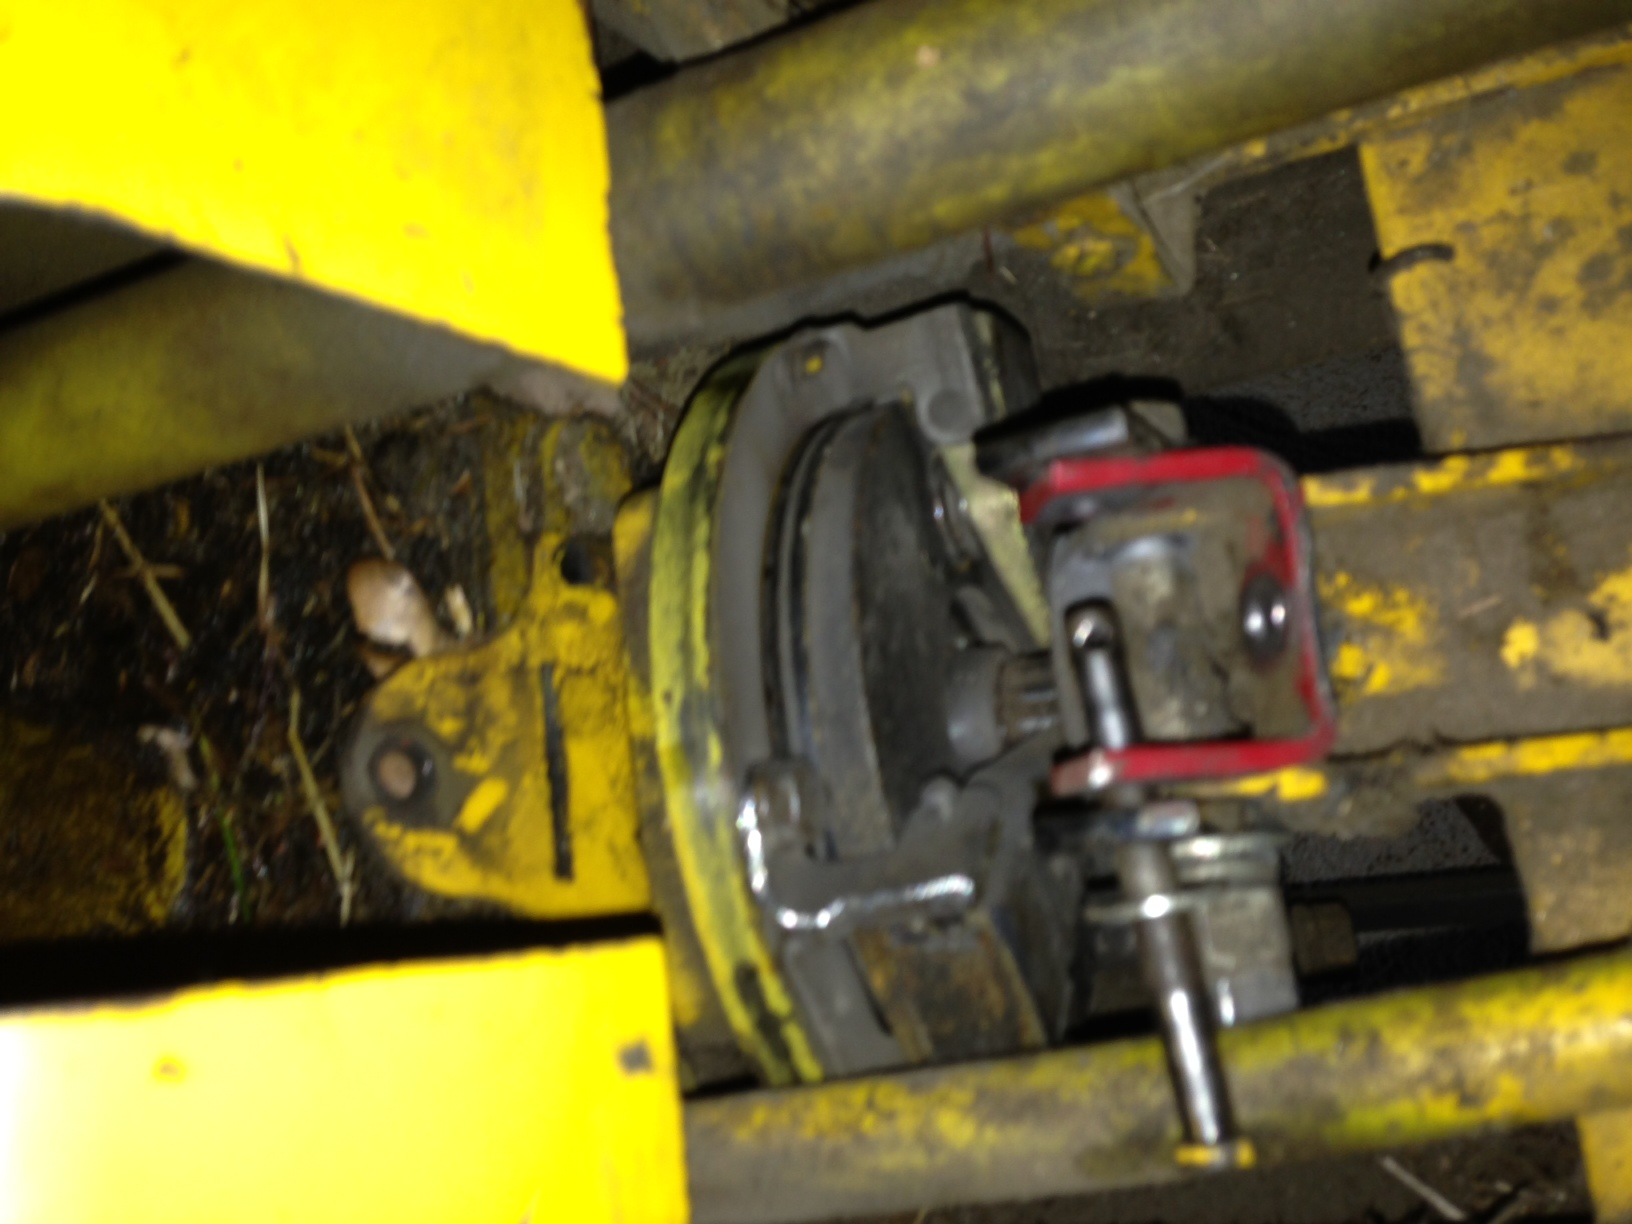 Coolant & Starting issues in 185 - Farmall Cub